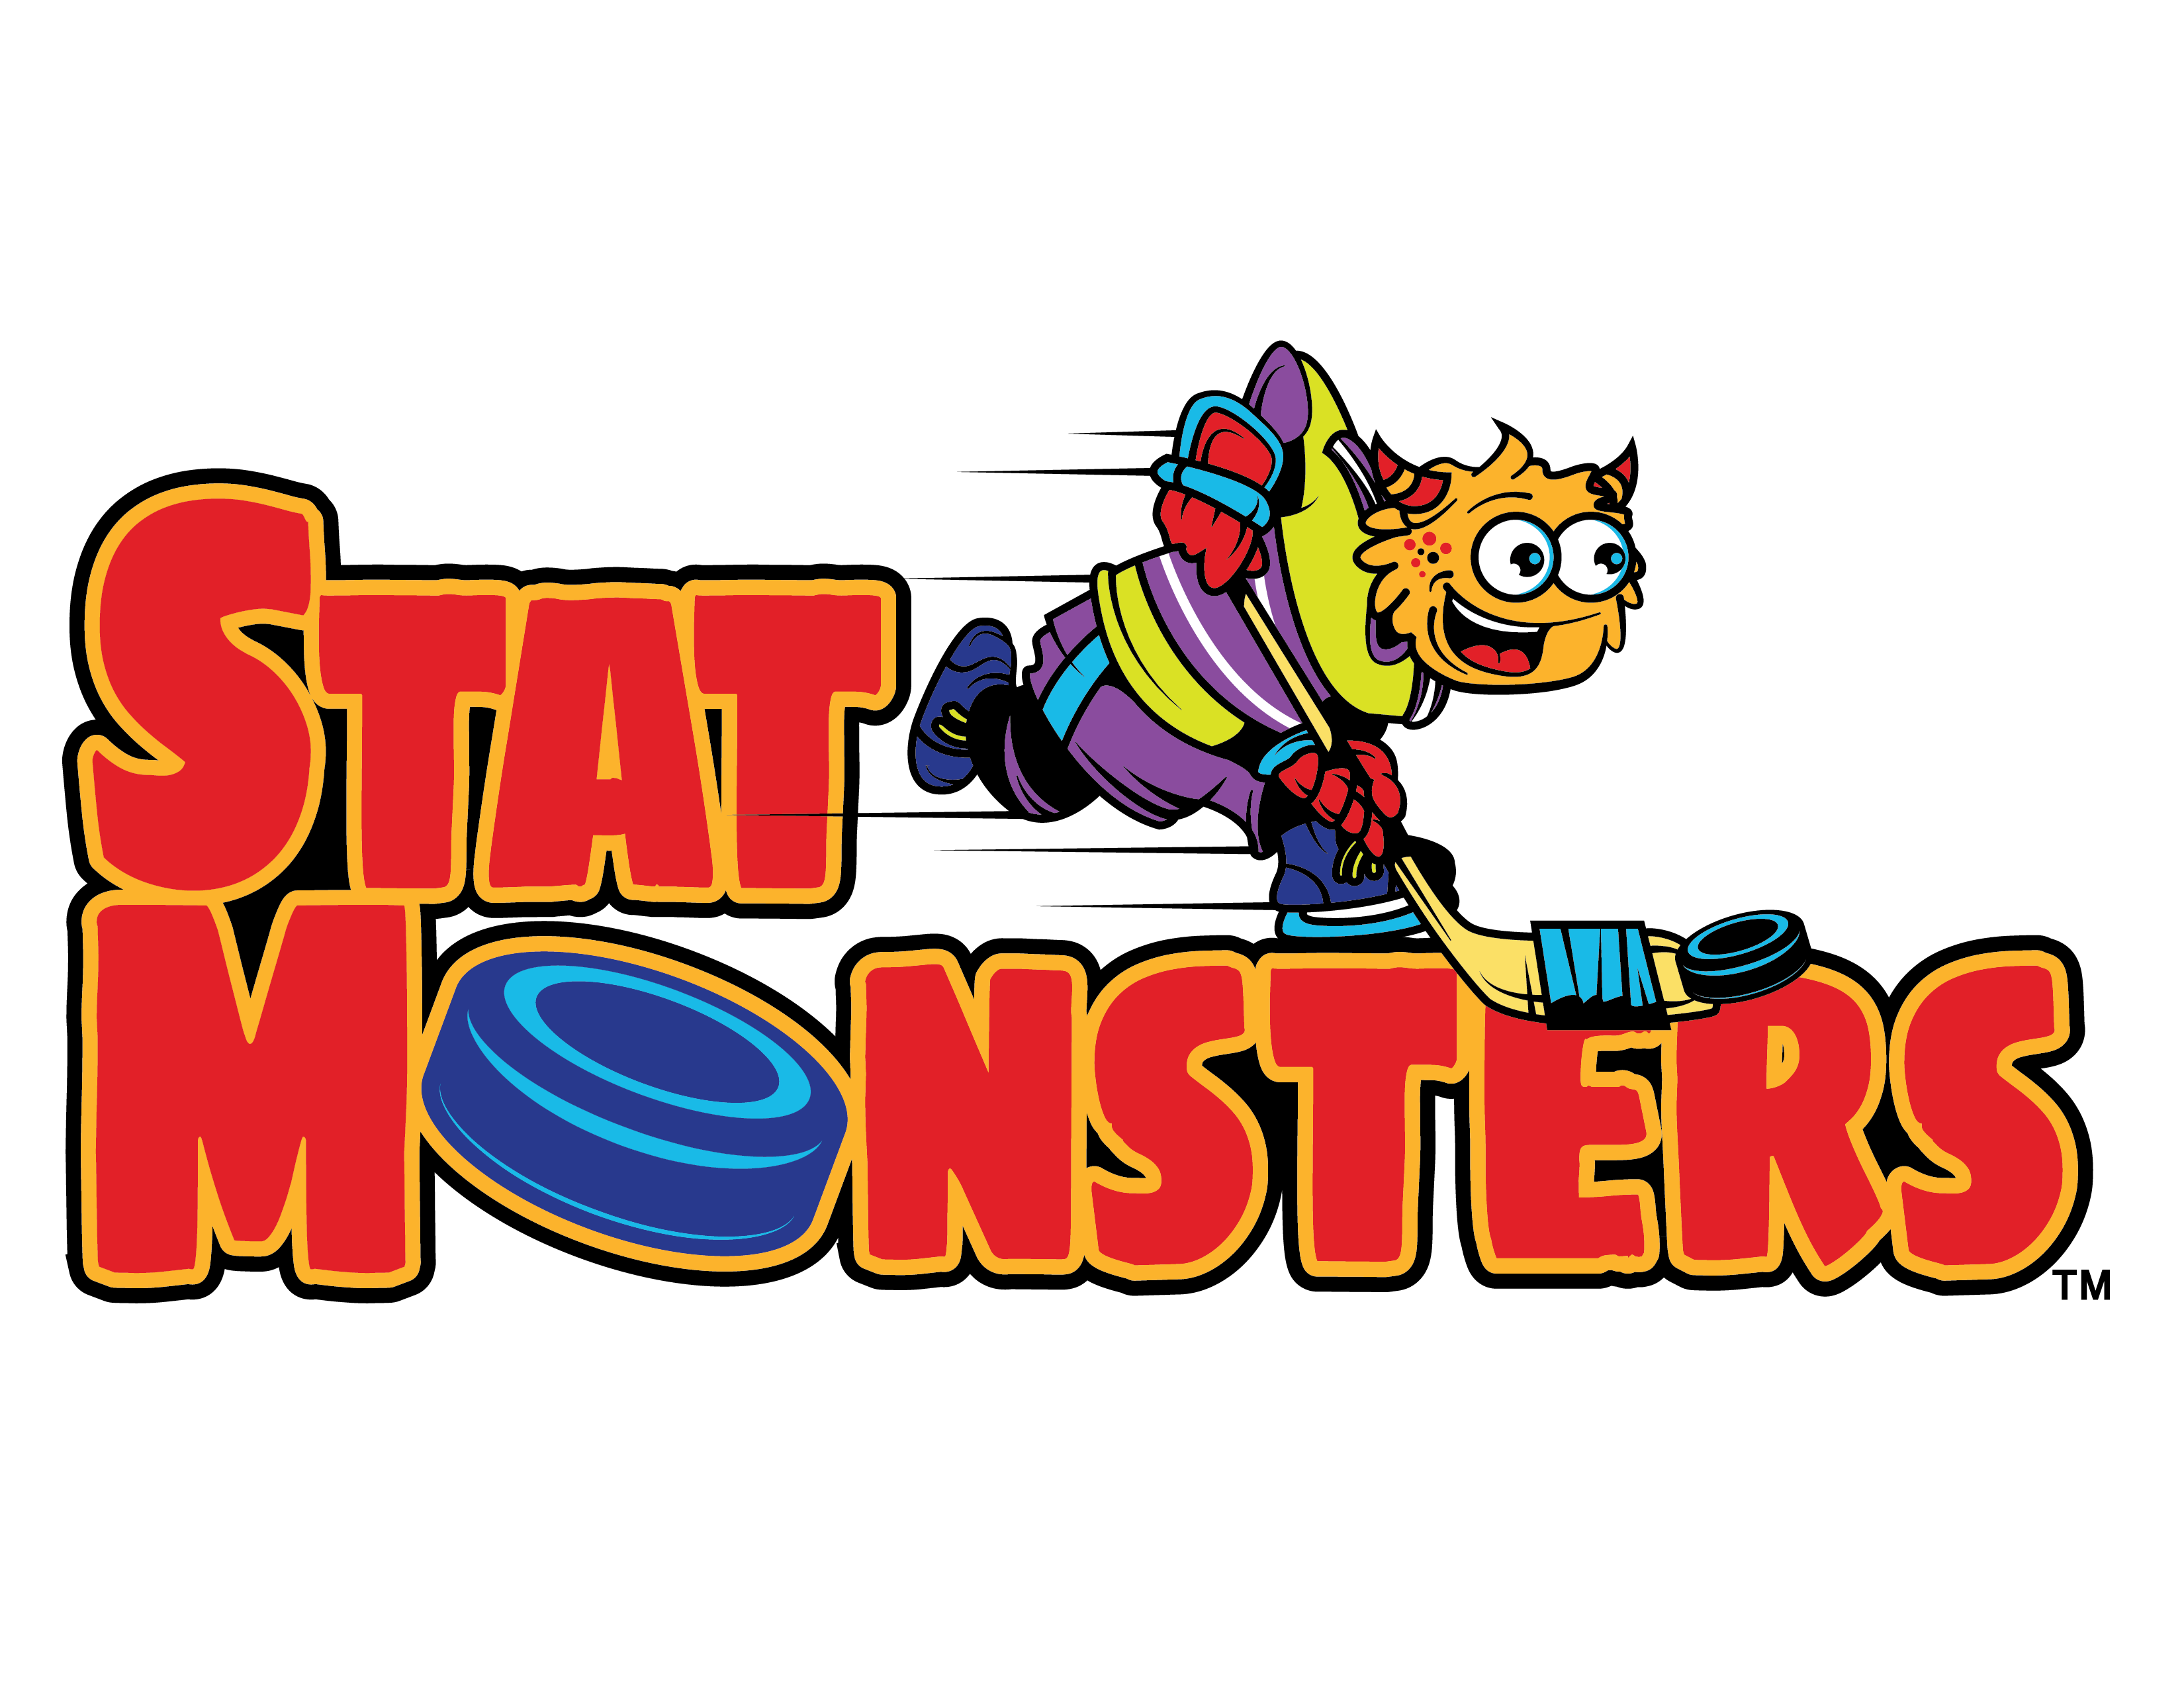 Hockey clipart hockey practice. Statmonsters com the ultimate